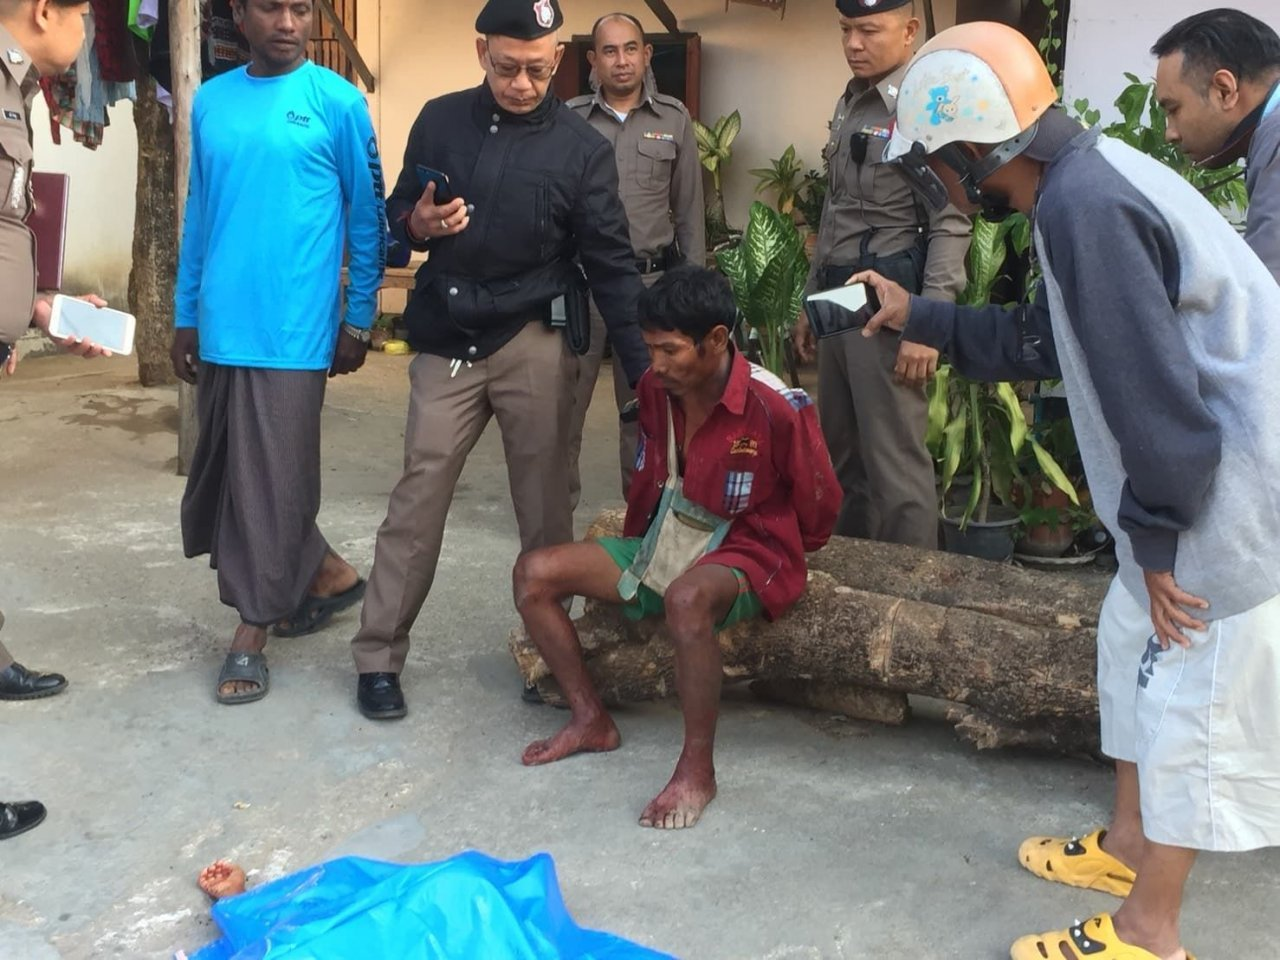 Tak horror as man walks into town with bloodied slain son in his arms. A Myanmar man is in police custody in Tak after allegedly slashing the throat of